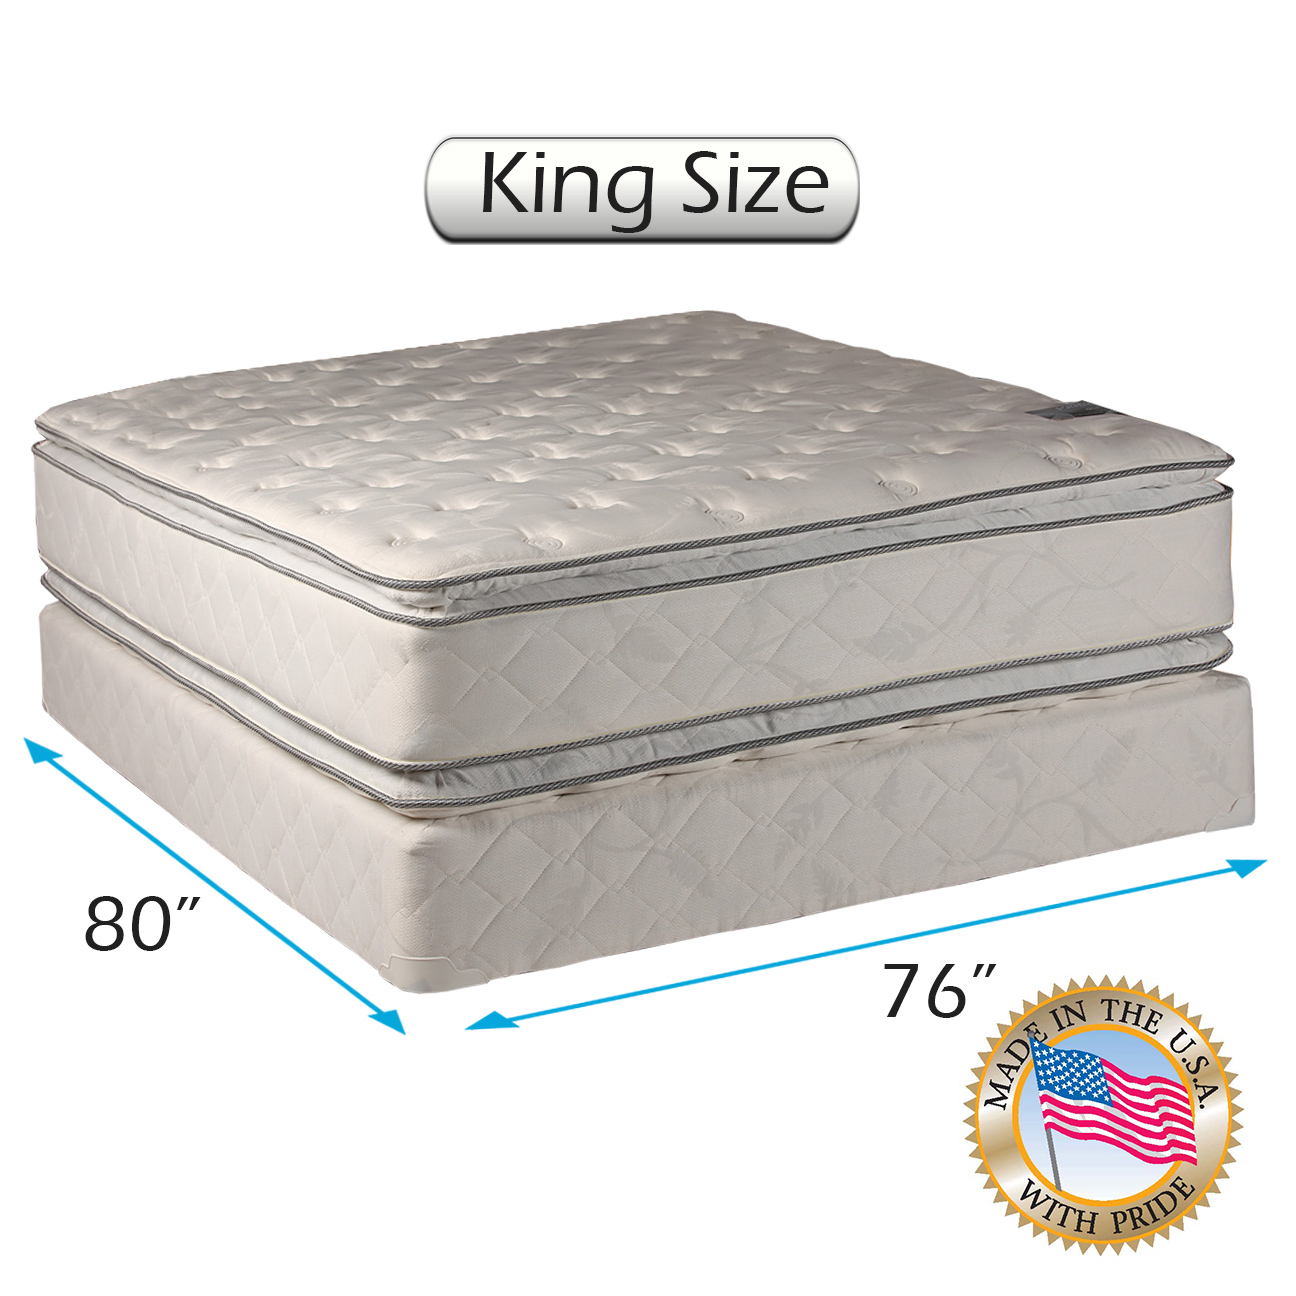 King mattress set Used King Dream Solutions Usa Pillow Top 12 Inch King Mattress And Box Spring Set Walmartcom Walmart Dream Solutions Usa Pillow Top 12 Inch King Mattress And Box Spring